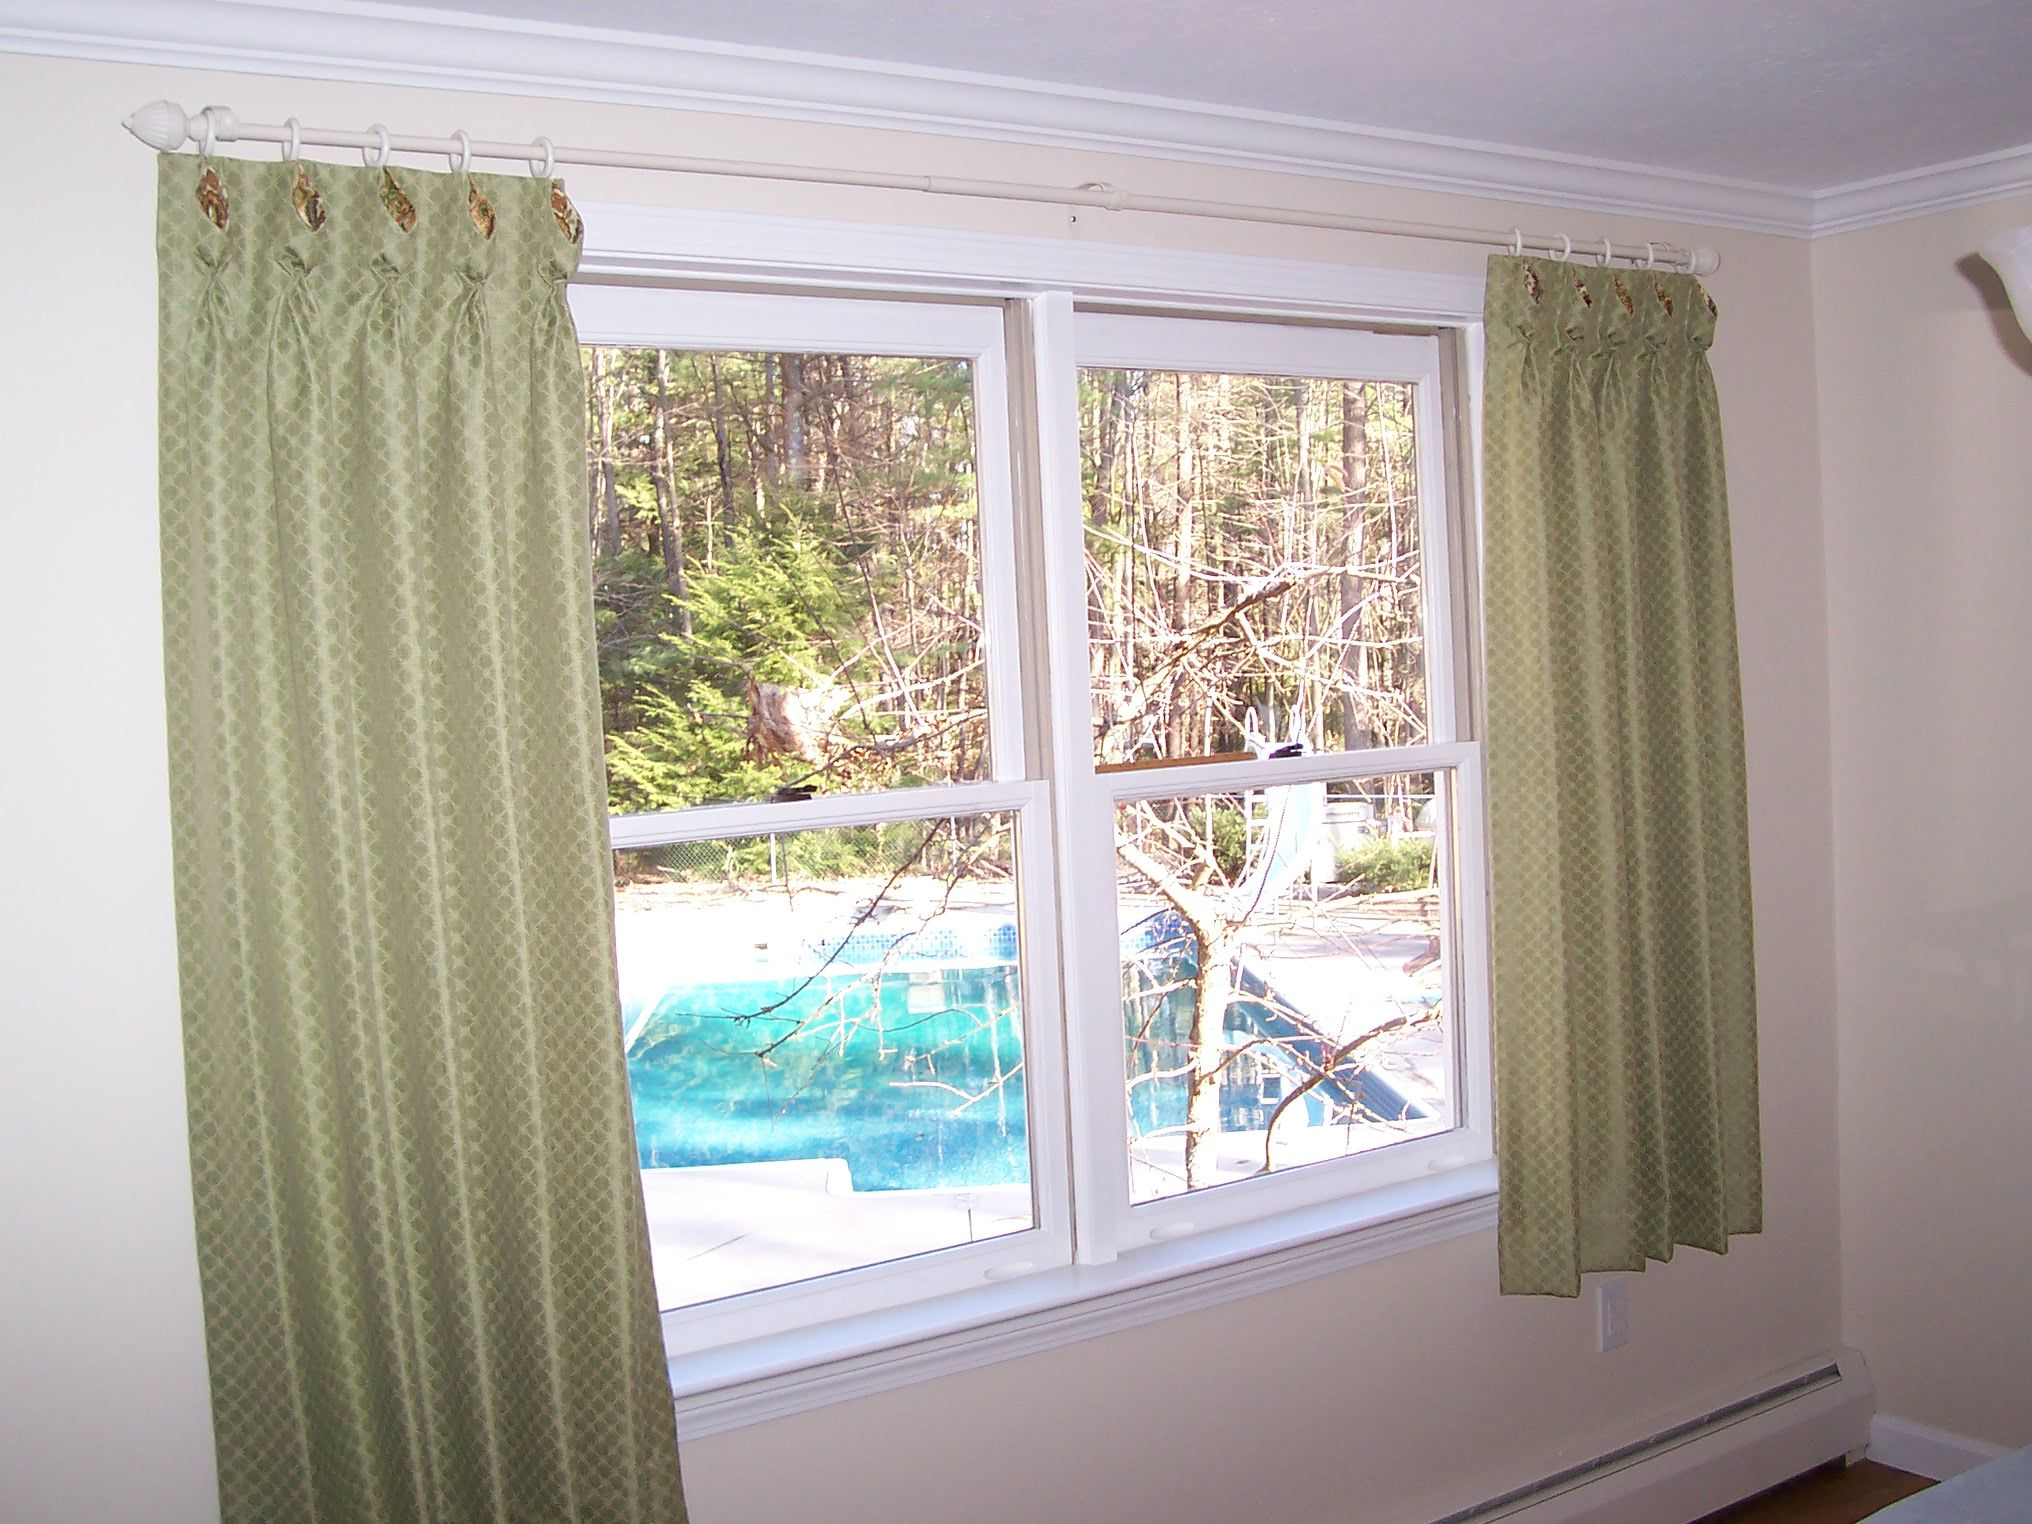 Pleated Drapes with an opened shaped pleat to show contrasting fabric on coordination valances in the  adjoining kitchen